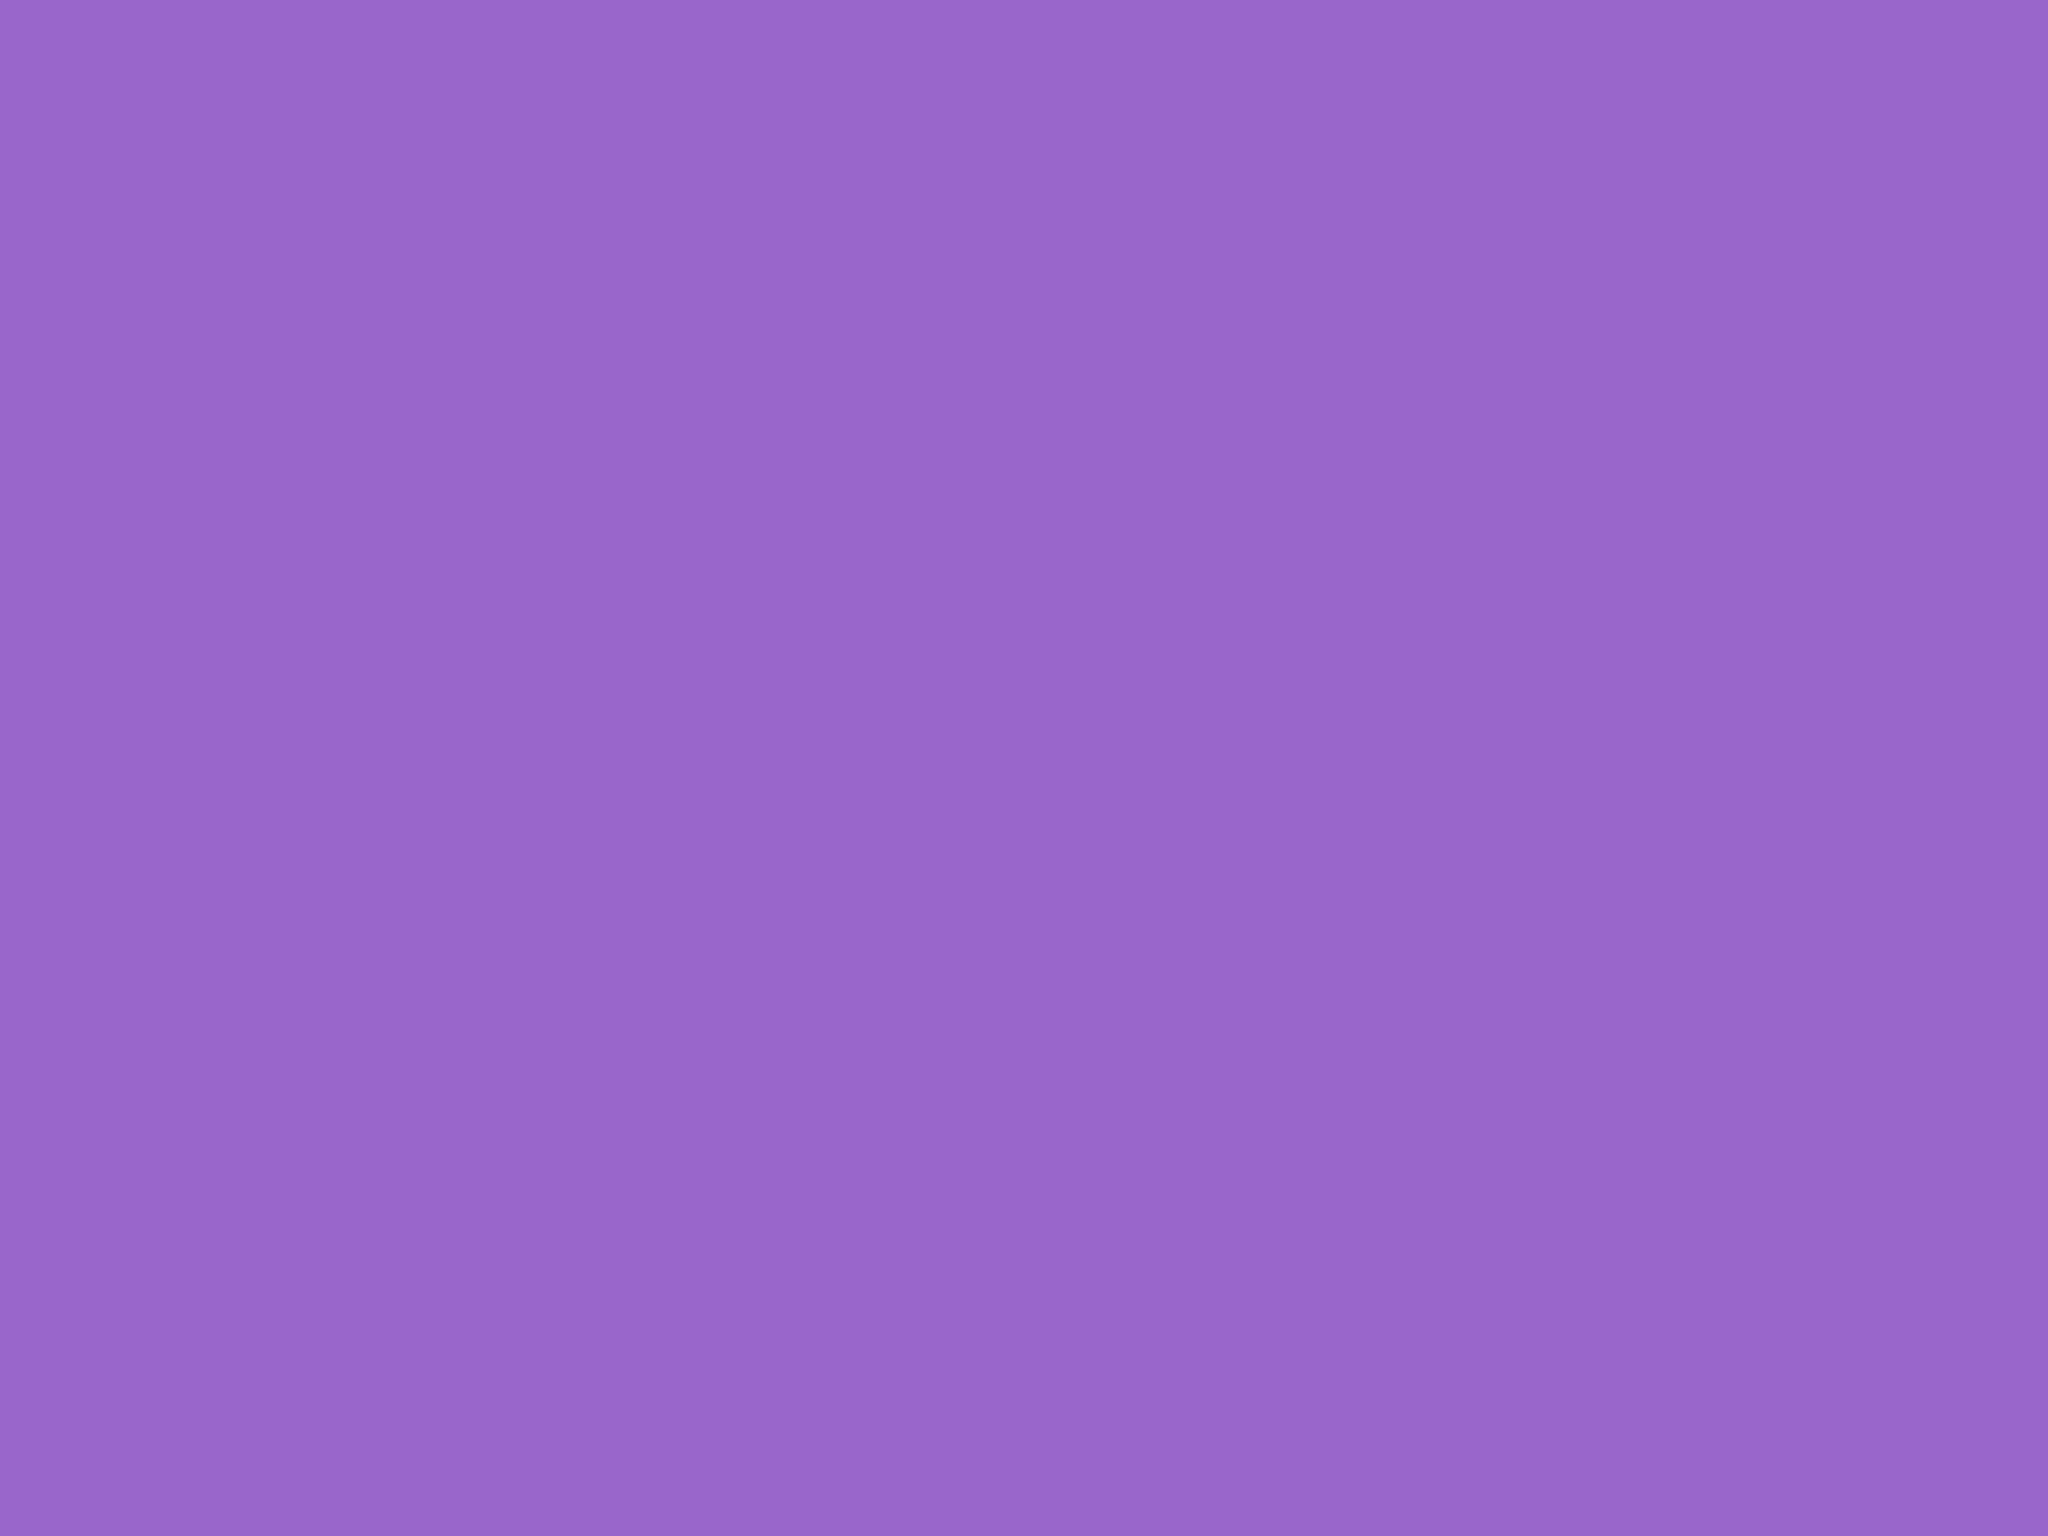 2048x1536 Amethyst Solid Color Background